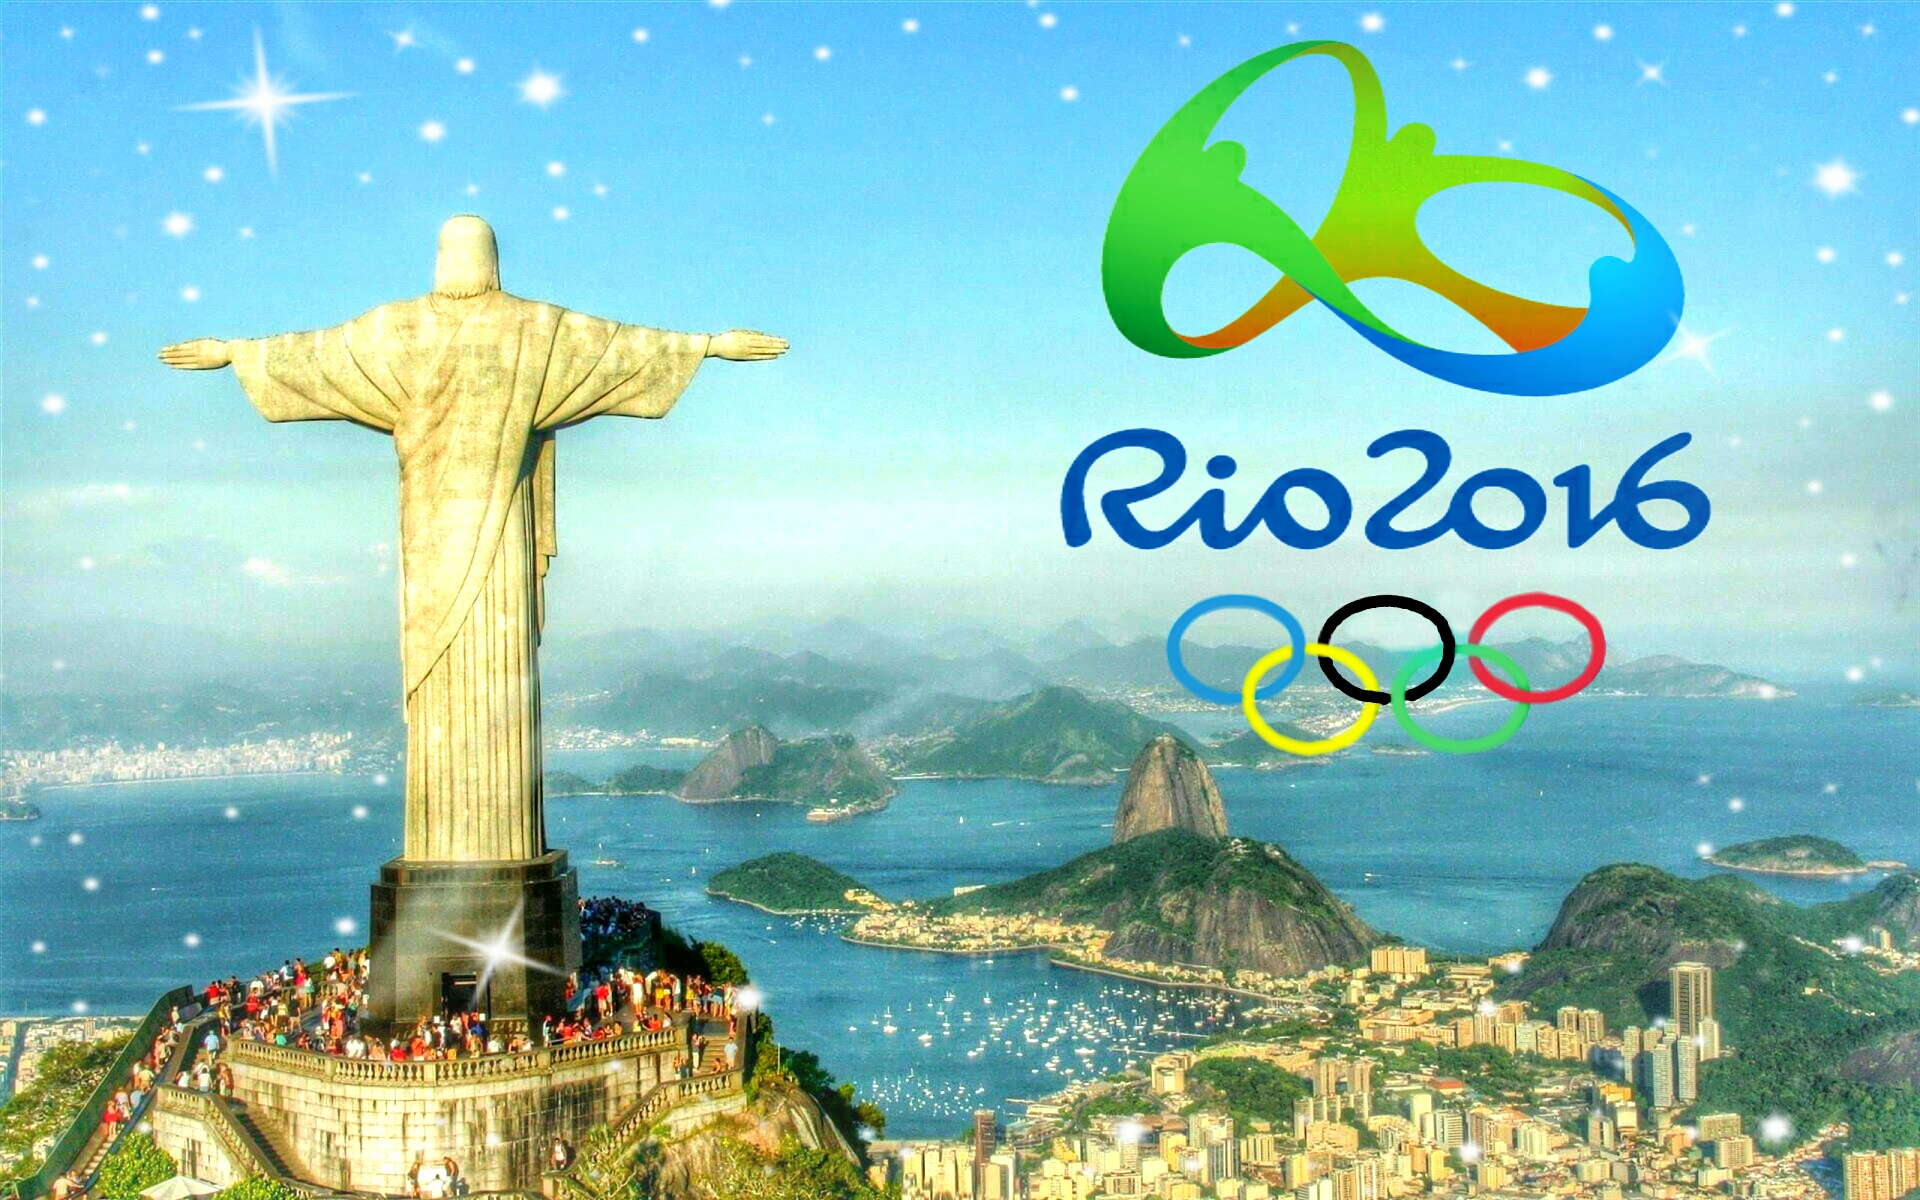 Steroids at the 2016 Rio Olympics